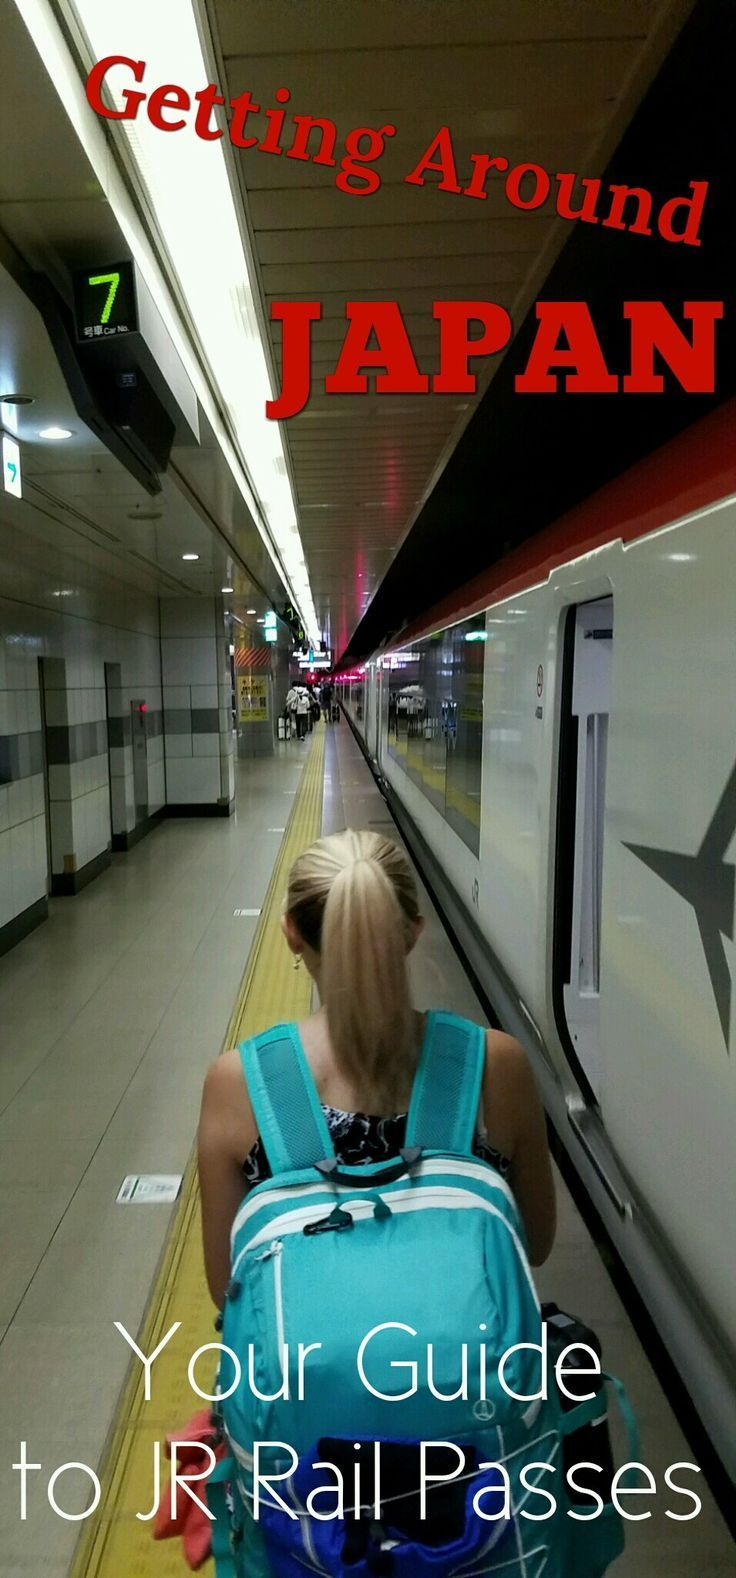 Getting Around Japan: Guide to JR Rail Passes - Have Seat Will Travel